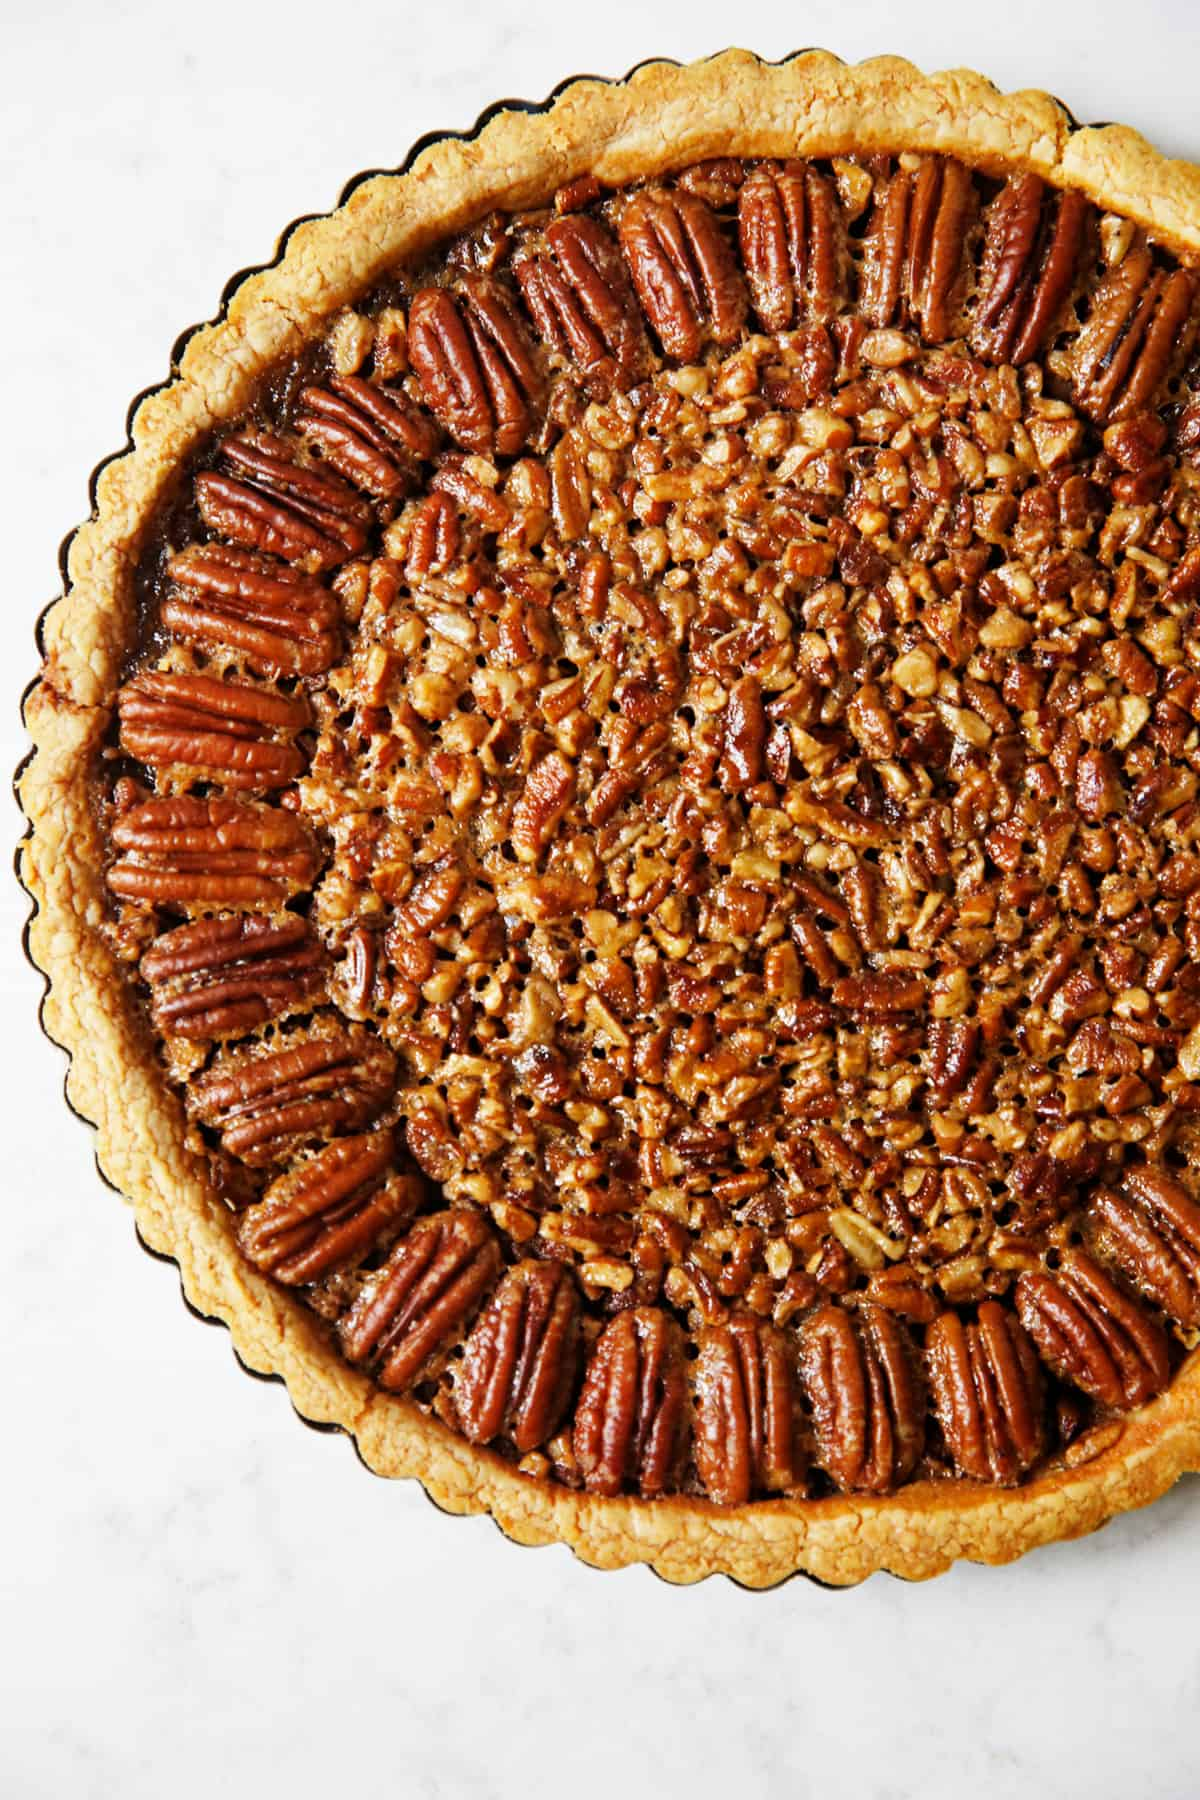 Decorated Gluten Free Pecan Pie